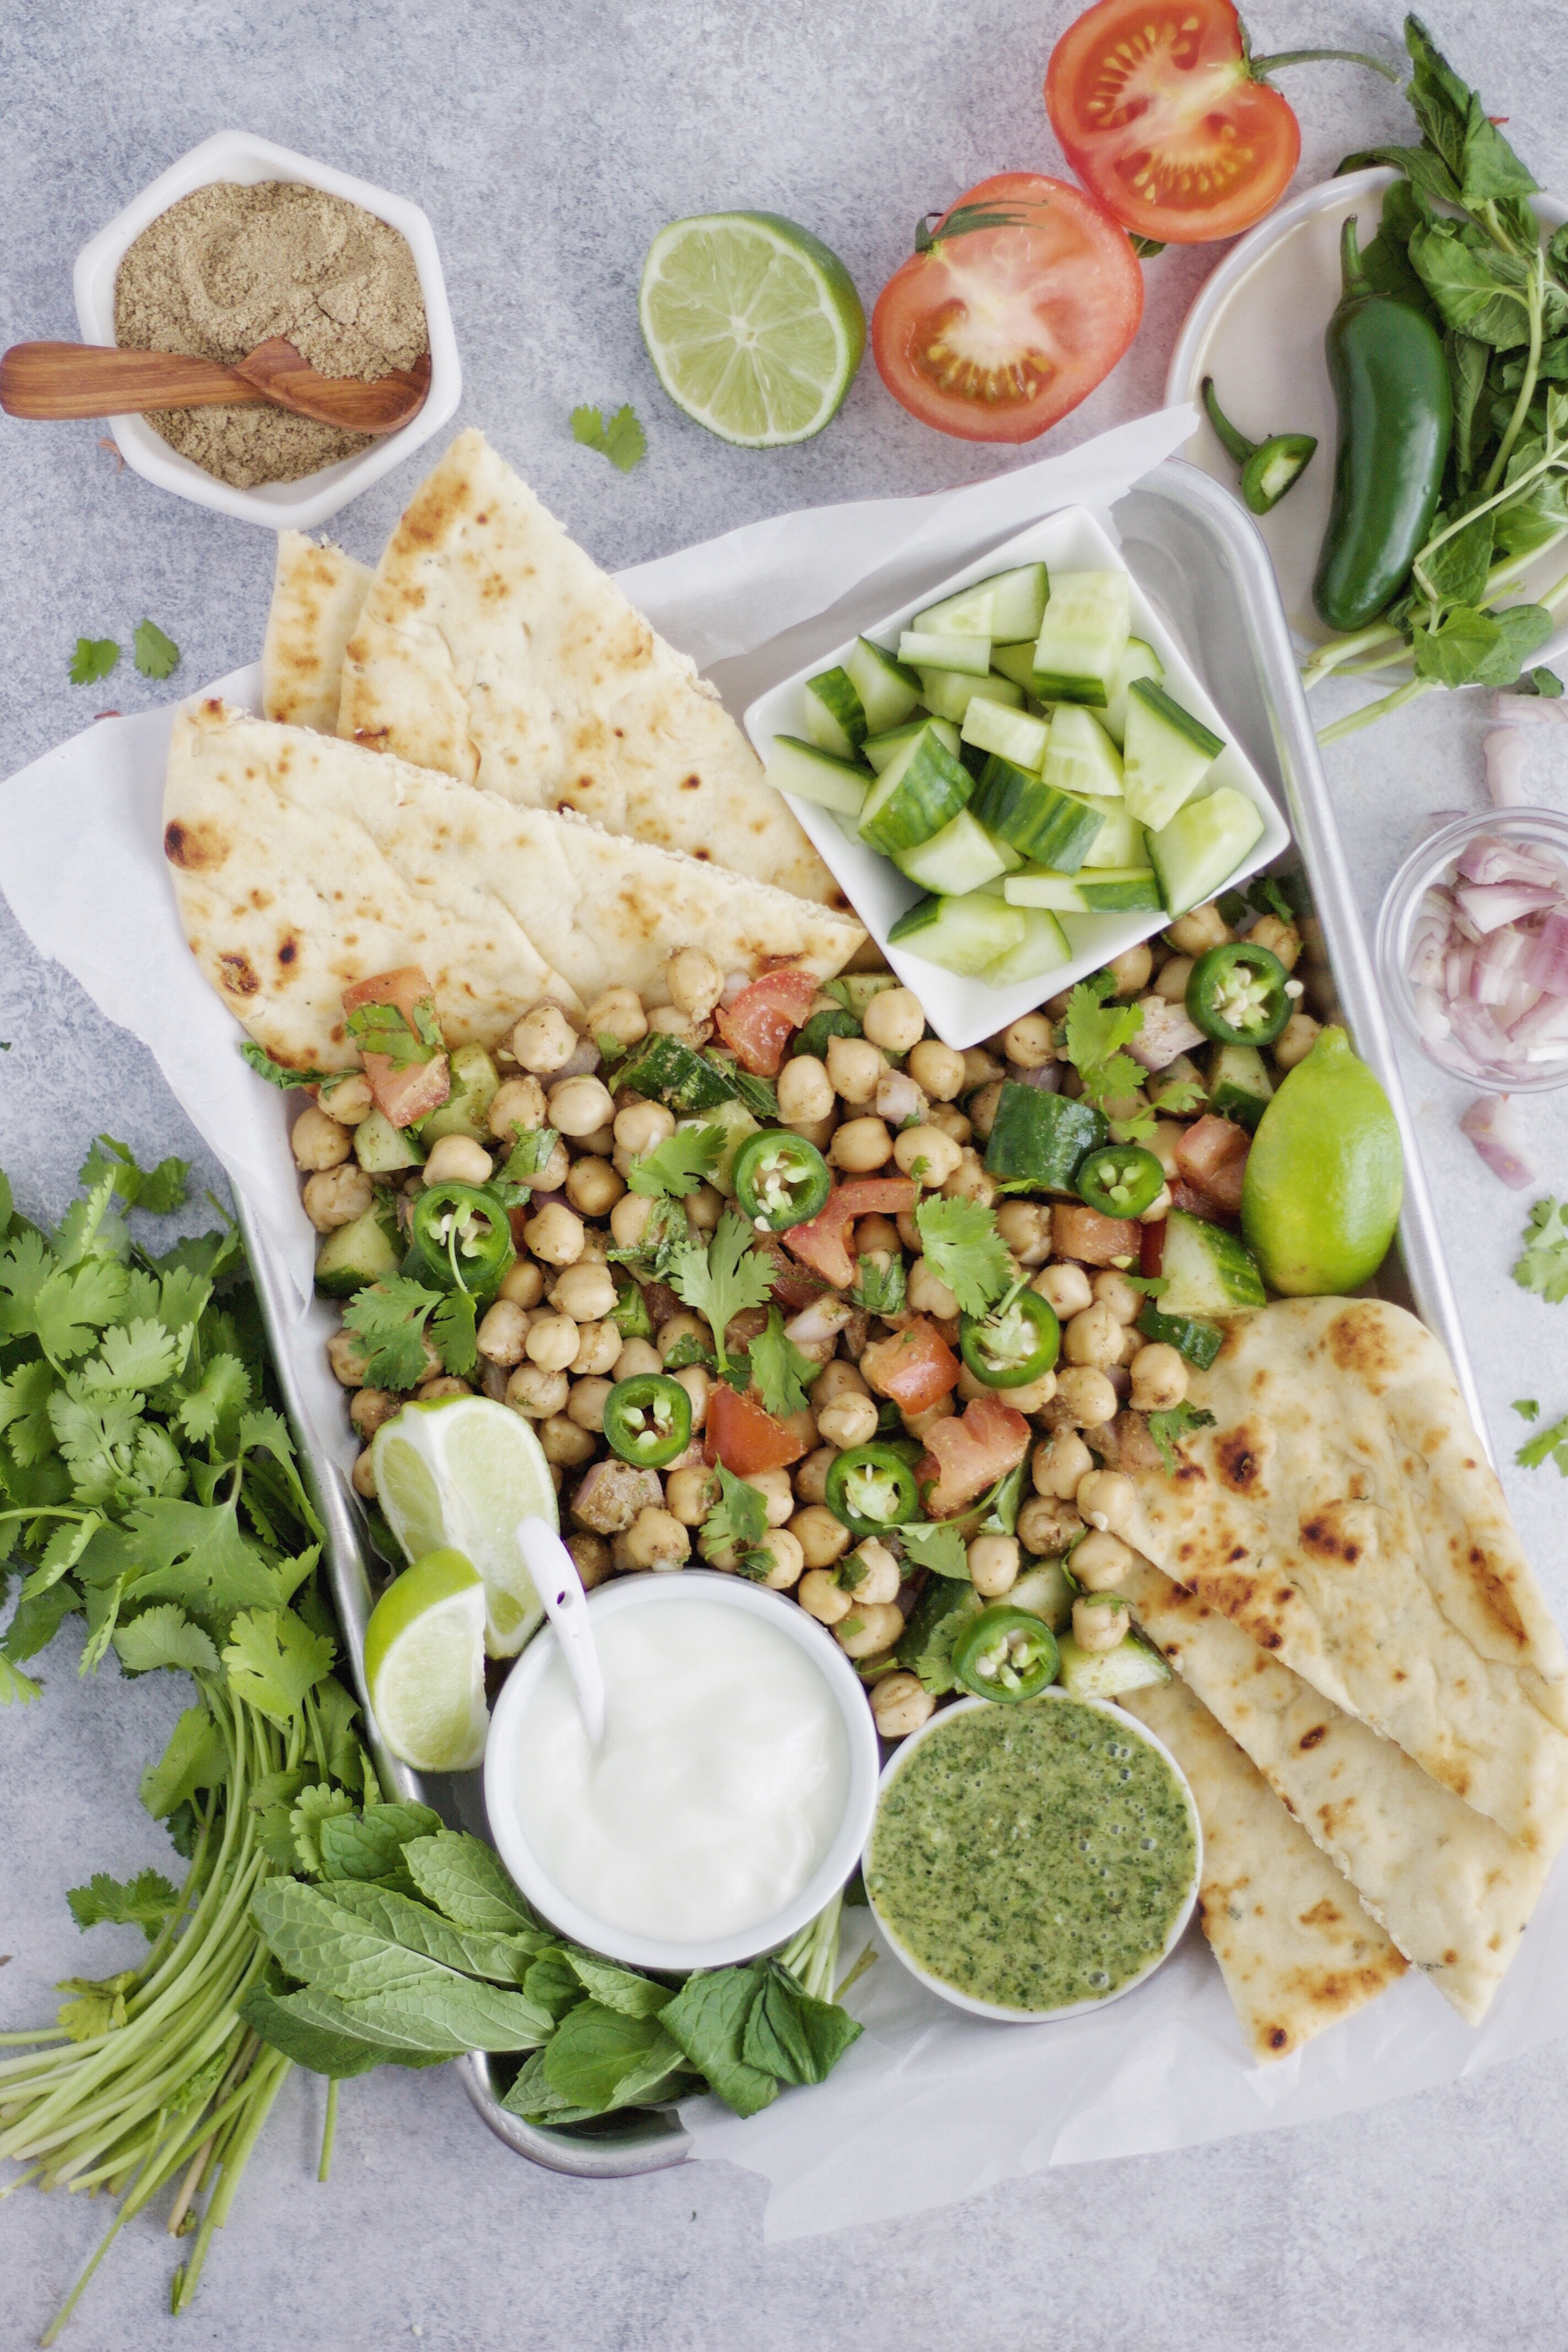 Cumin Chickpea Salad with Mint Chutney from This Brown Kitchen